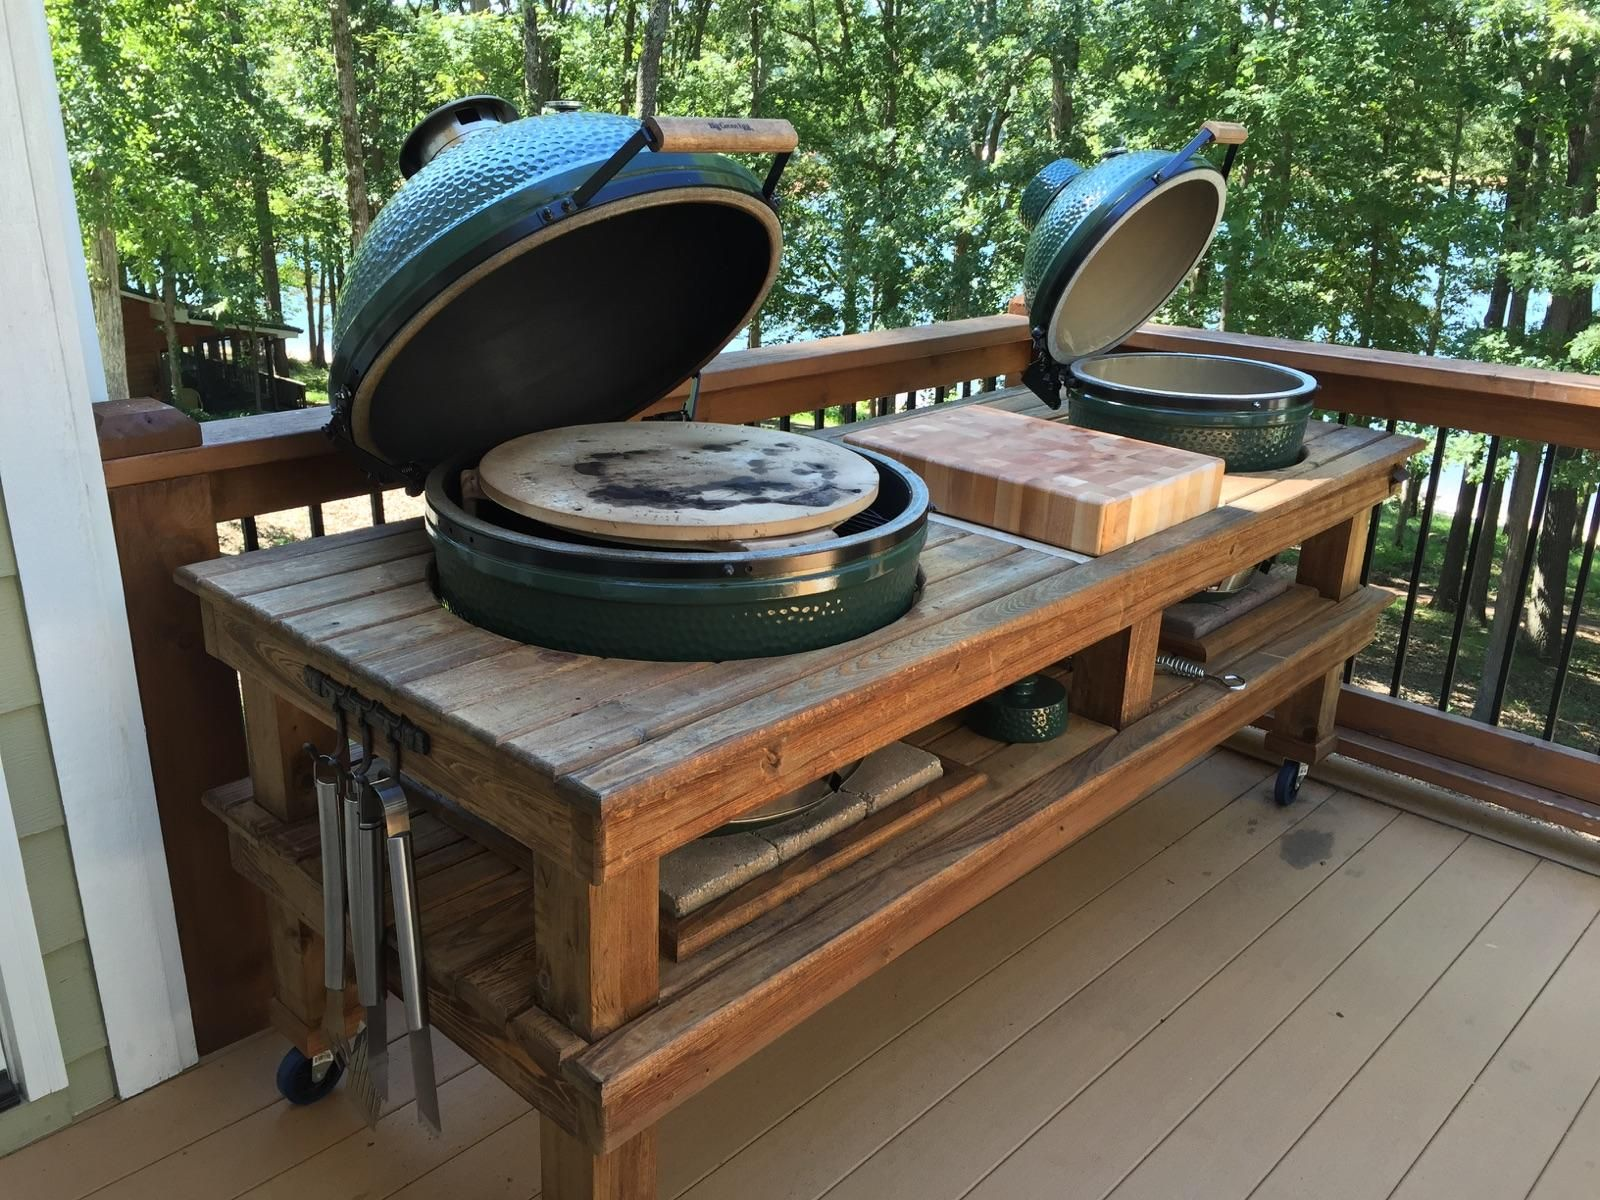 Our New Standard Double Grill Table Is Now Available. I Build This Table  Taking Styling